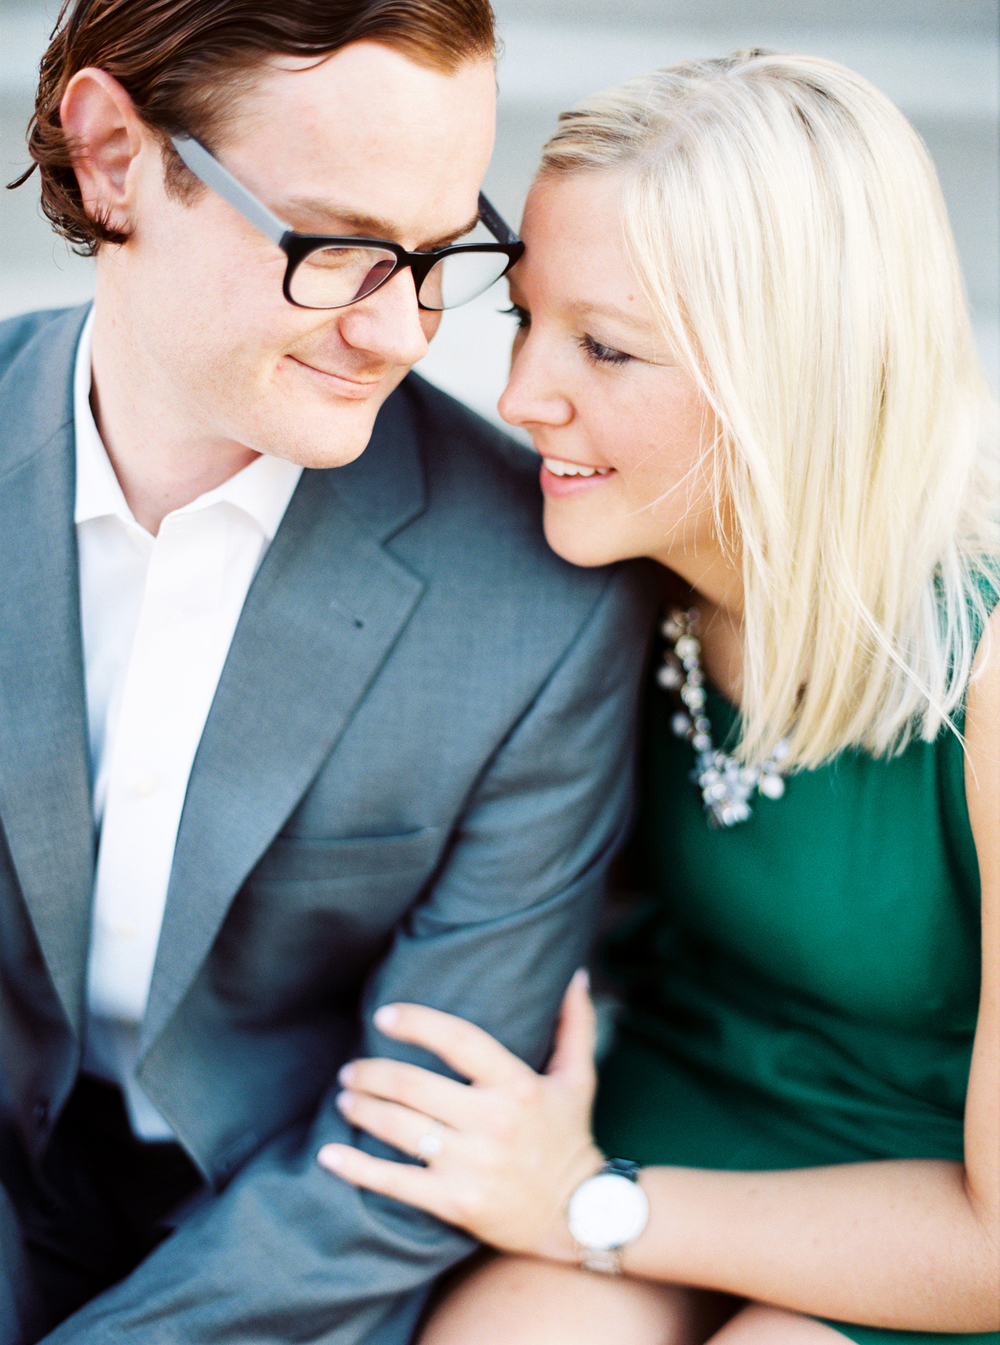 Lafayette Park Engagement Session by Oldani Photography St. Louis Wedding Photographers 47.jpg